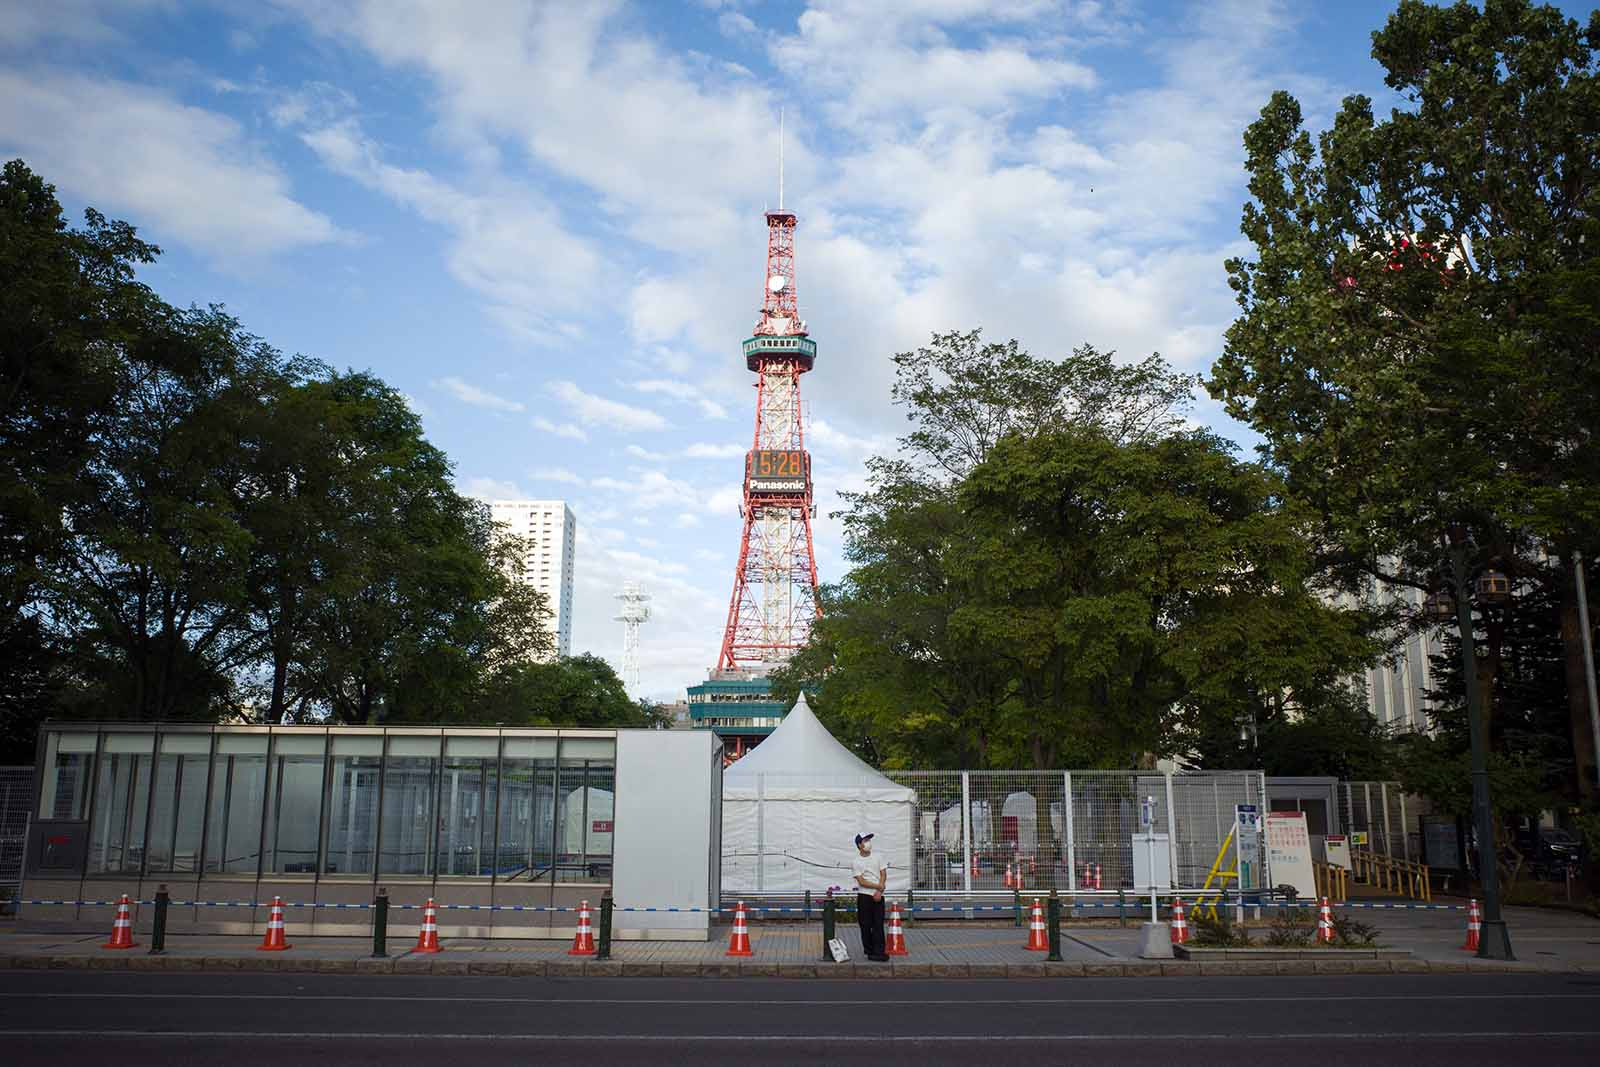 The site of the Tokyo Olympic marathon and competitive walking events is pictured in Sapporo, Japan, on August 3.